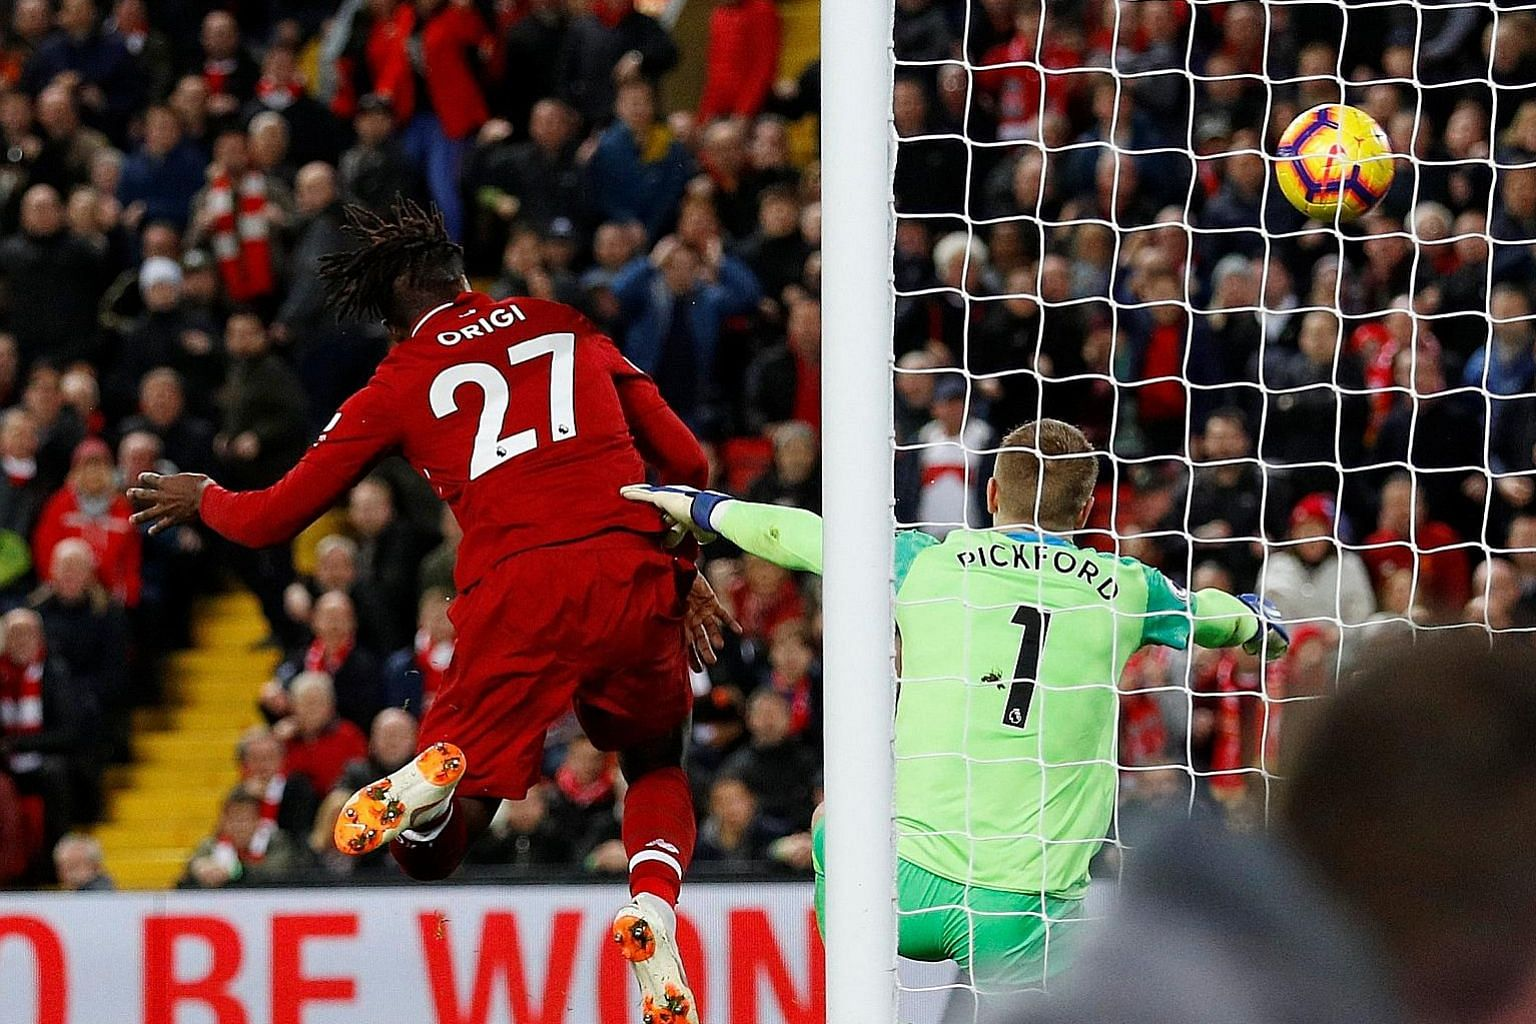 Forward Divock Origi scoring the winner in Liverpool's 1-0 derby victory over Everton at Anfield on Sunday. The bizarre strike prompted Reds manager Jurgen Klopp to run onto the pitch in unbridled celebration.